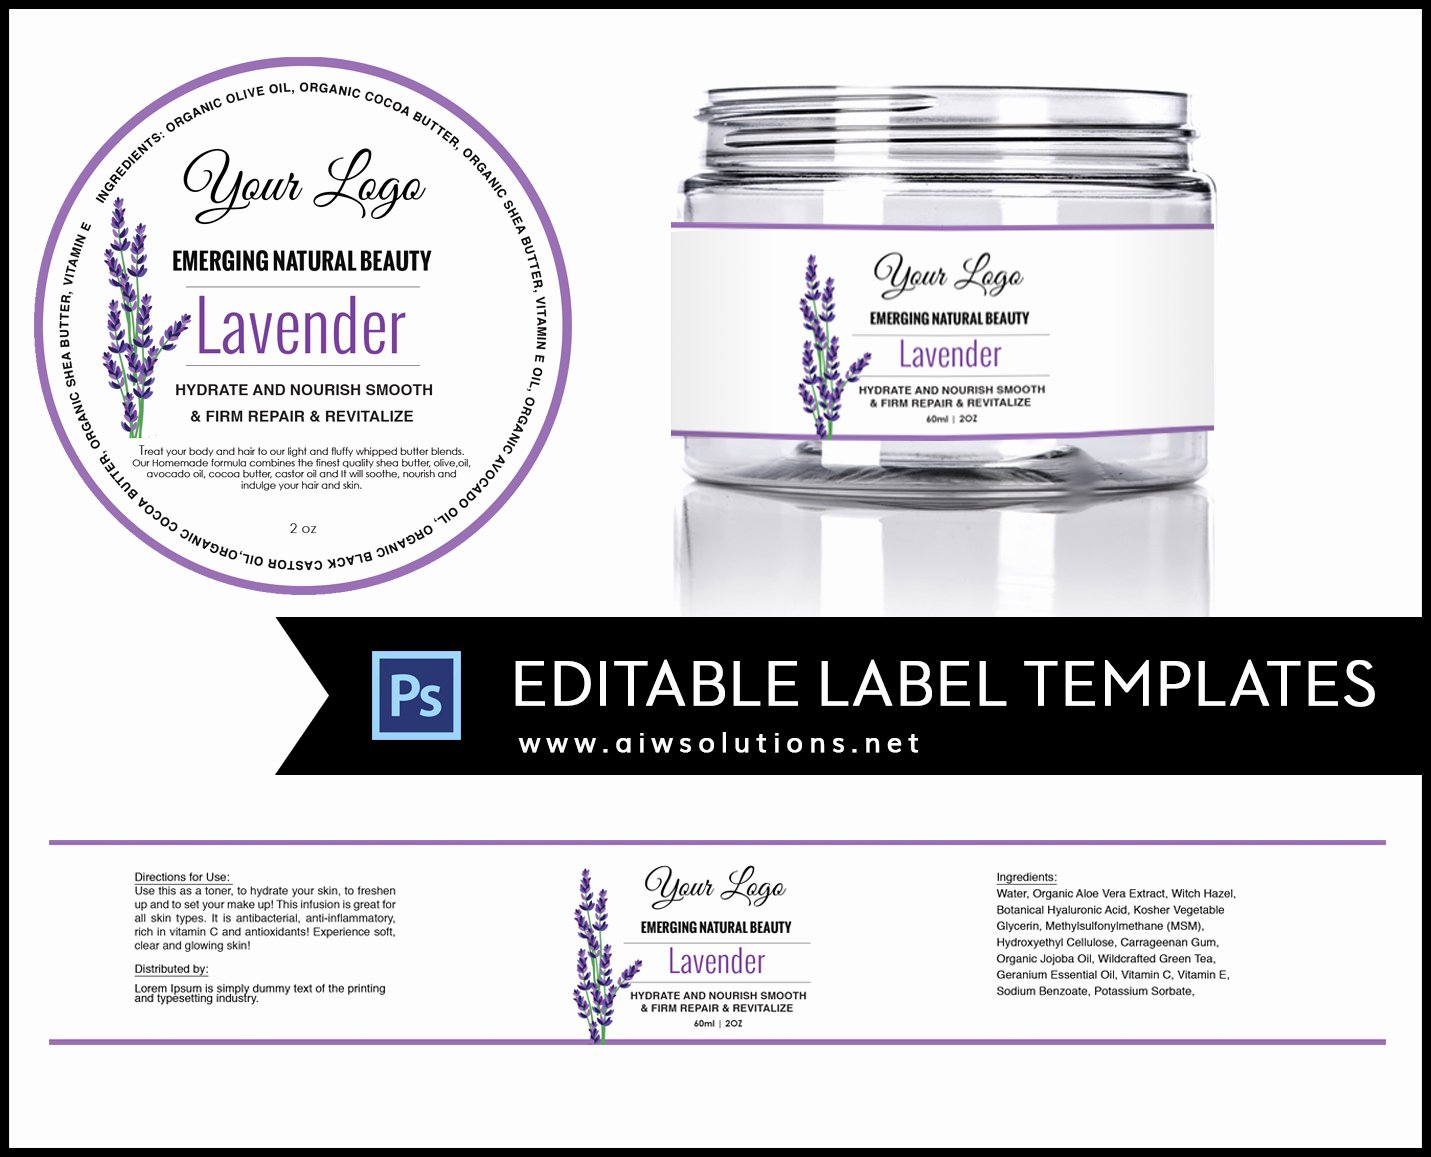 Vitamin Water Label Template Elegant Candle Label Bernardin Jar Labels Bottlelabels Candy Labels Clear Labels Freezer Labels